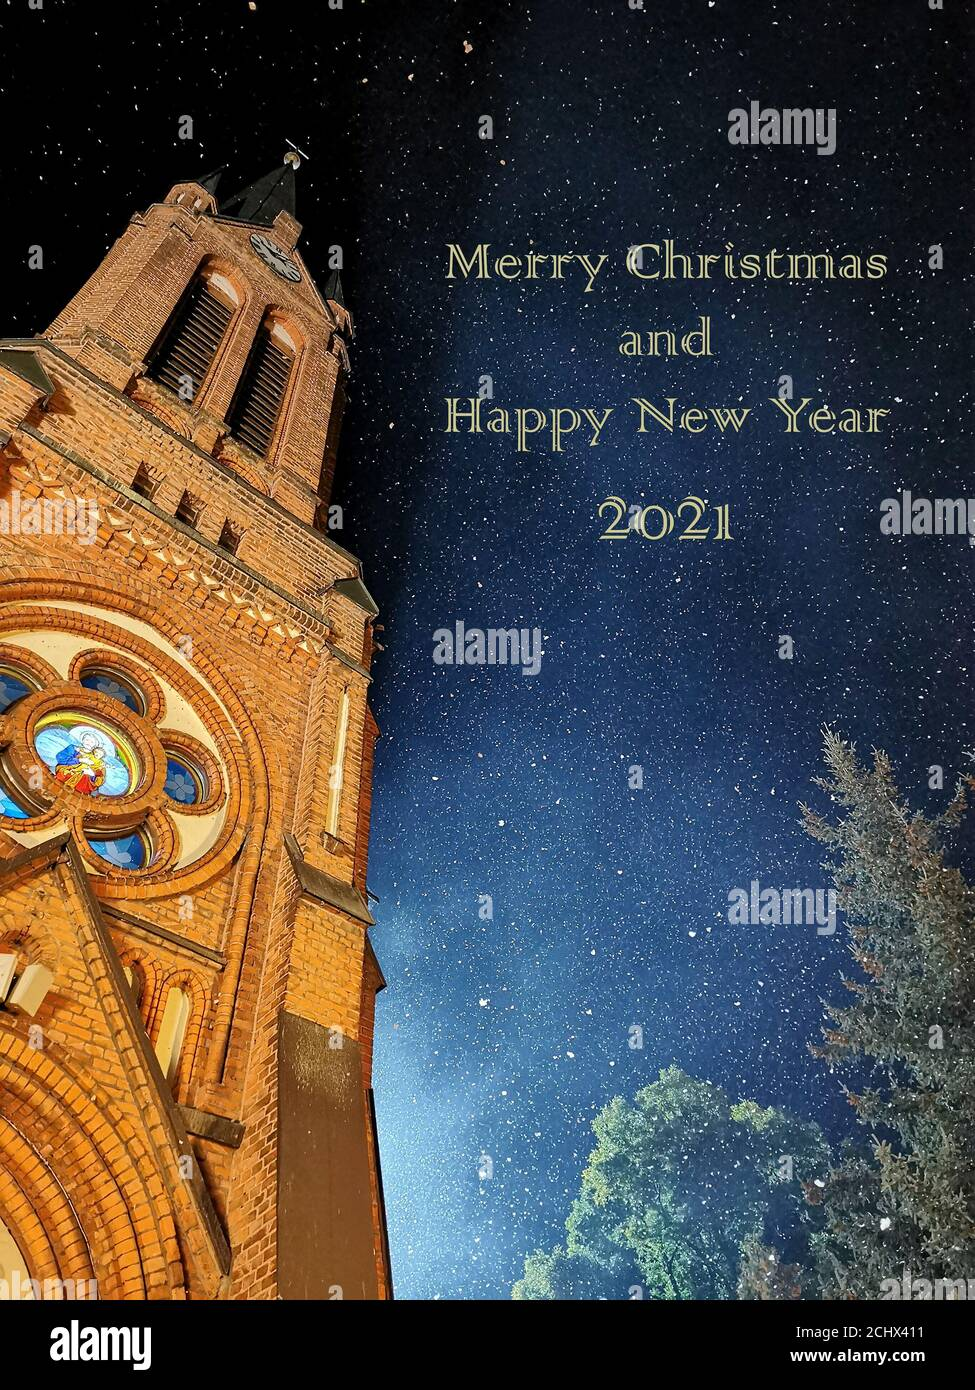 Christmas In New Hampshire 2021 Merry Christmas And Happy New Year 2021 Night Sky In Winter And A Piece Of The Church Visible Stock Photo Alamy